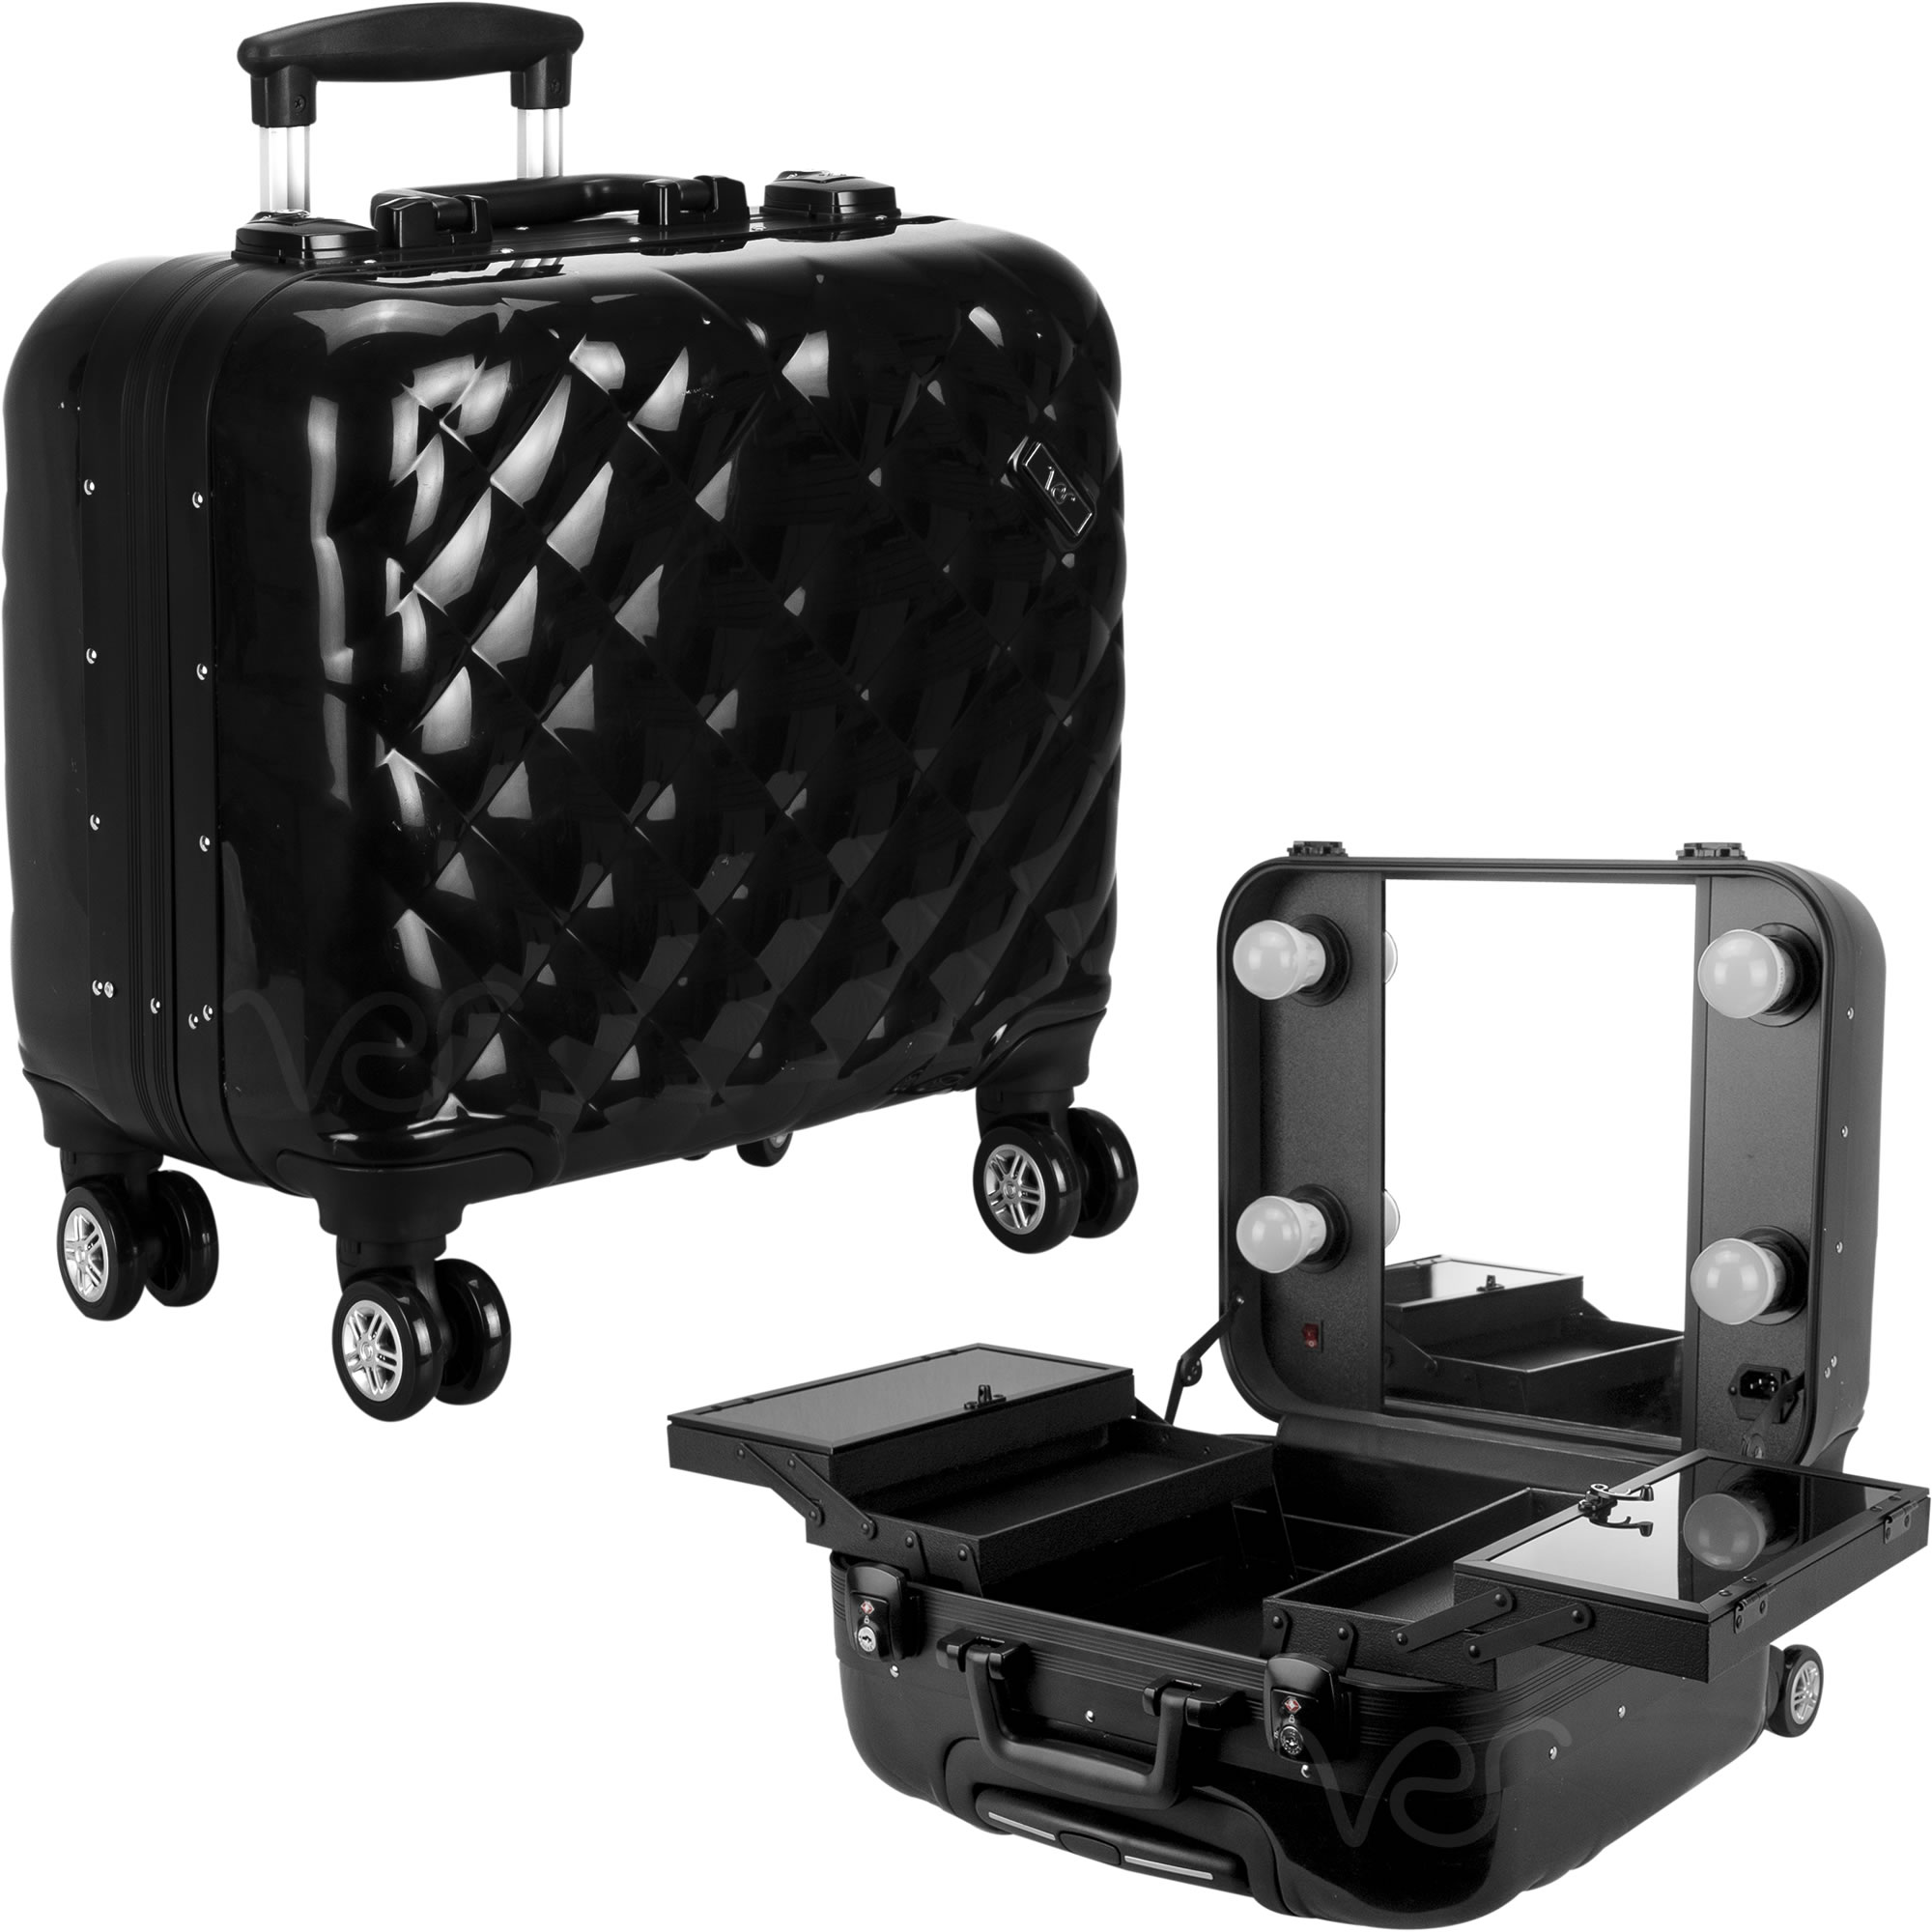 BLACK QUILTED PROFESSIONAL TRAVEL 4-WHEELS ROLLING MAKEUP STUDIO CASE WITH LED LIGHTS, MIRROR, TRAYS & TSA ACCEPTED LOCKS